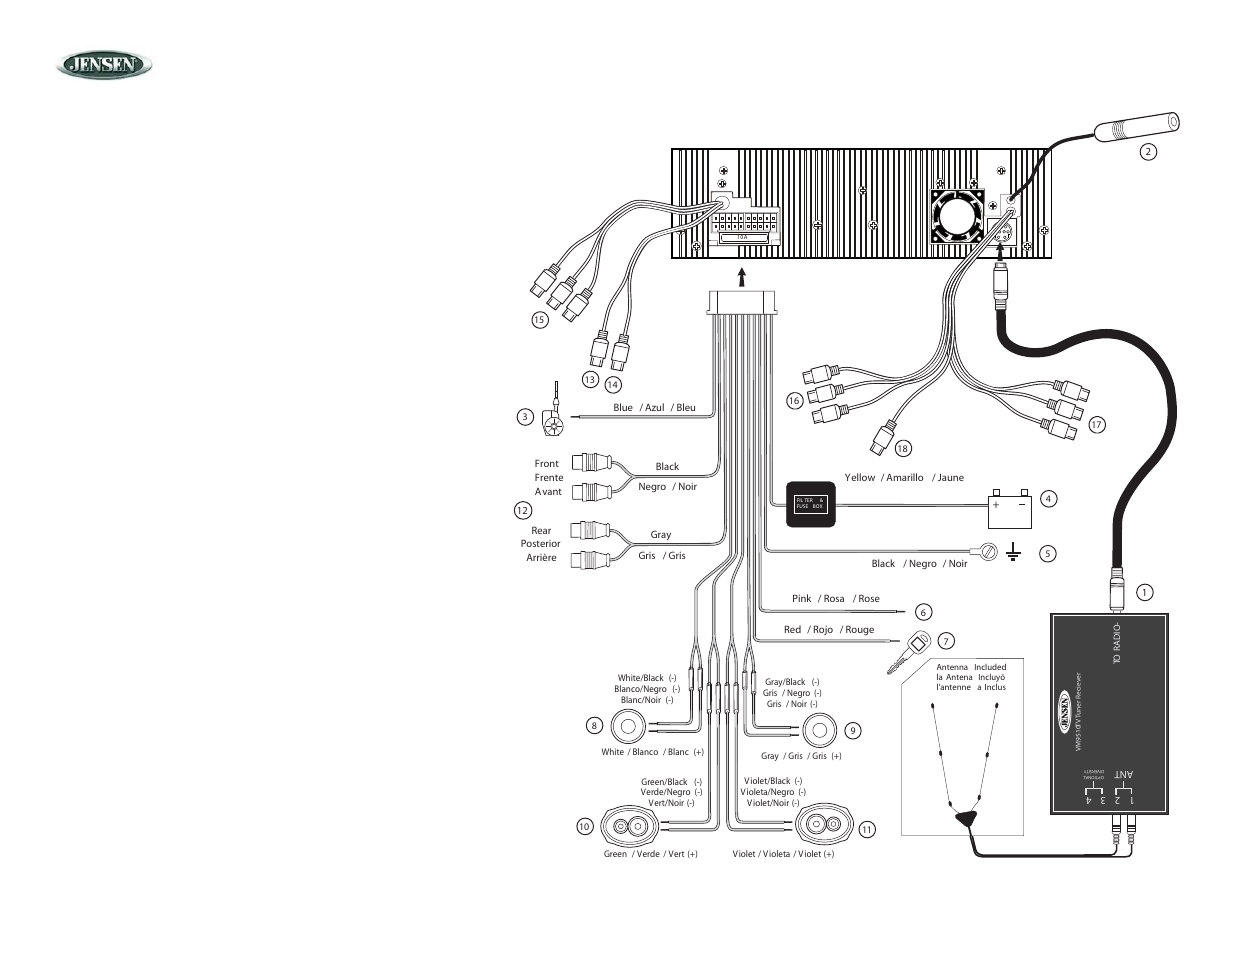 jensen vm9510 wiring harness diagram   36 wiring diagram